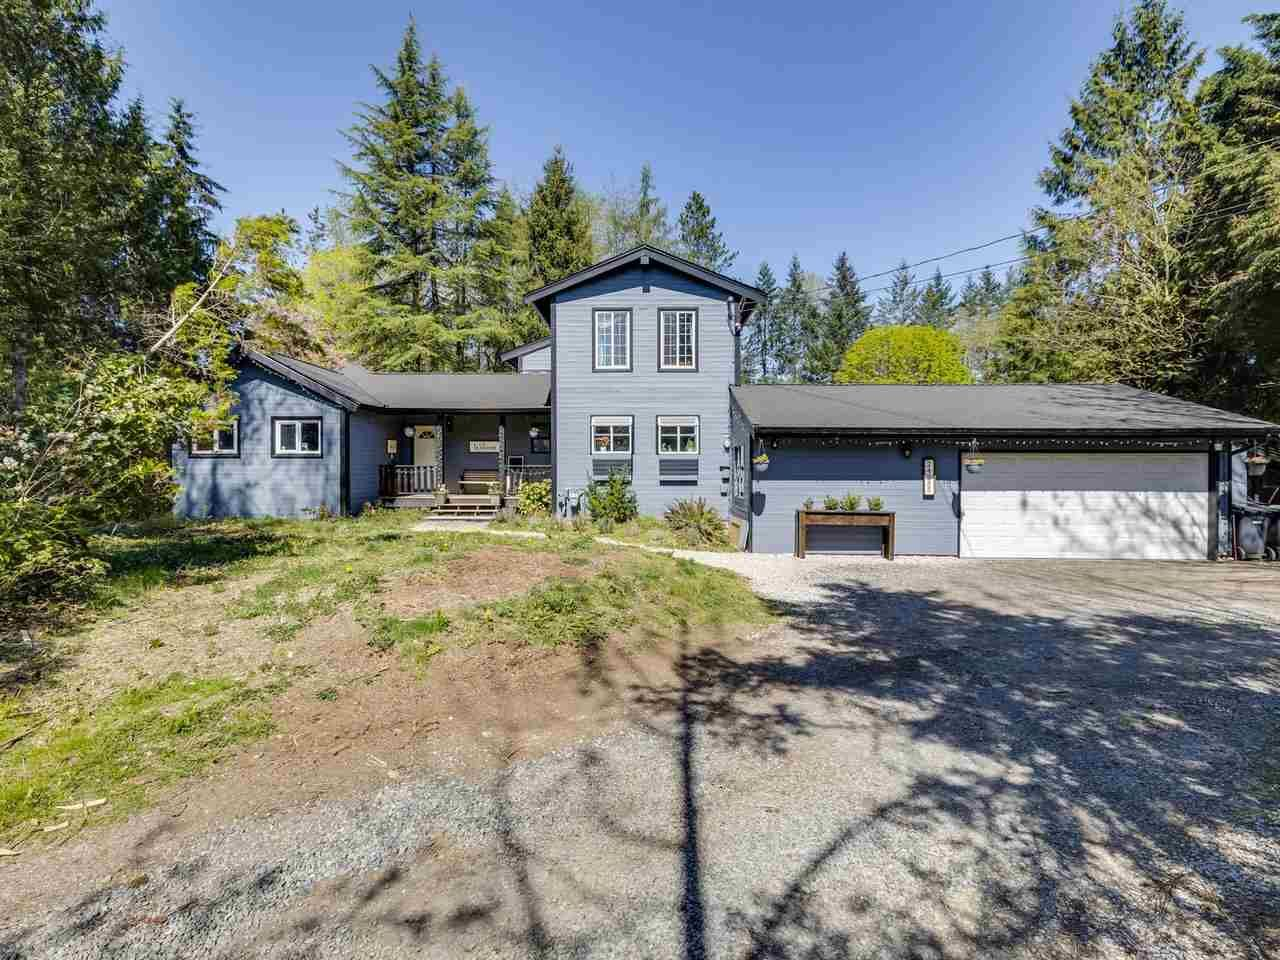 Main Photo: 24255 54 Avenue in Langley: Salmon River House for sale : MLS®# R2569756